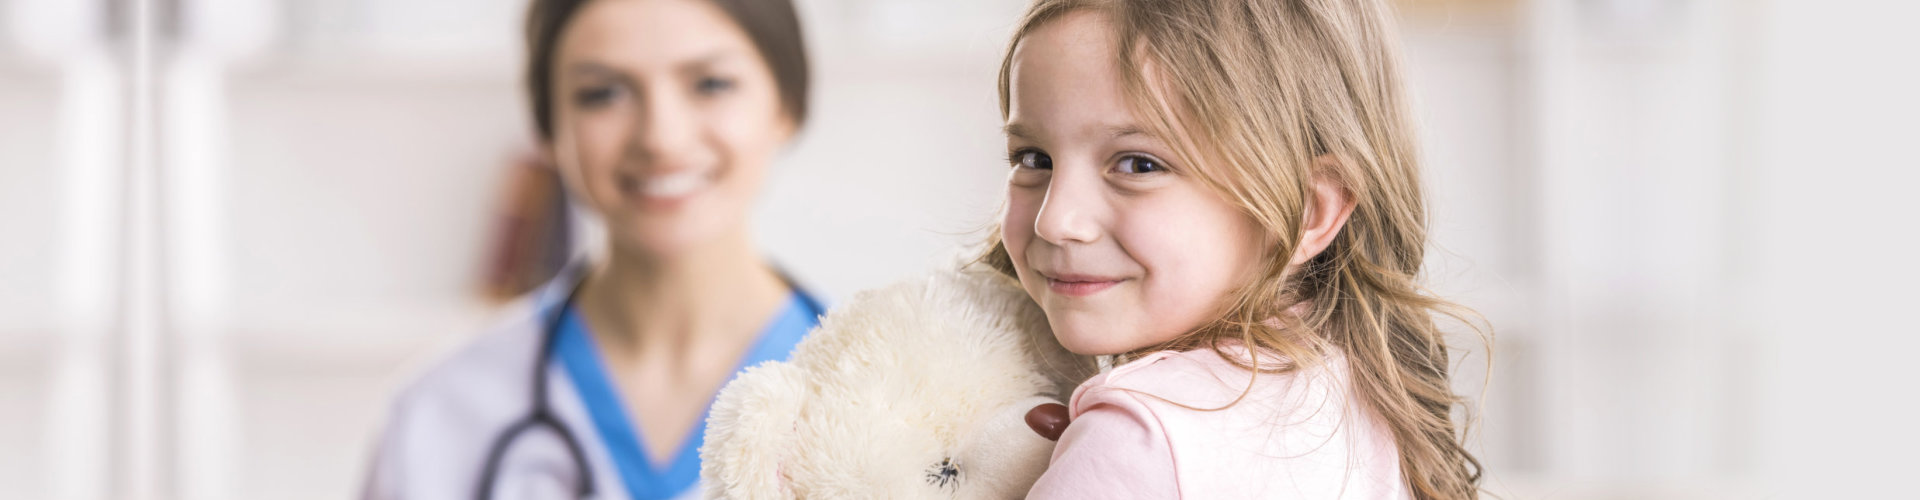 young girl holding her teddy bear with a therapist in the background